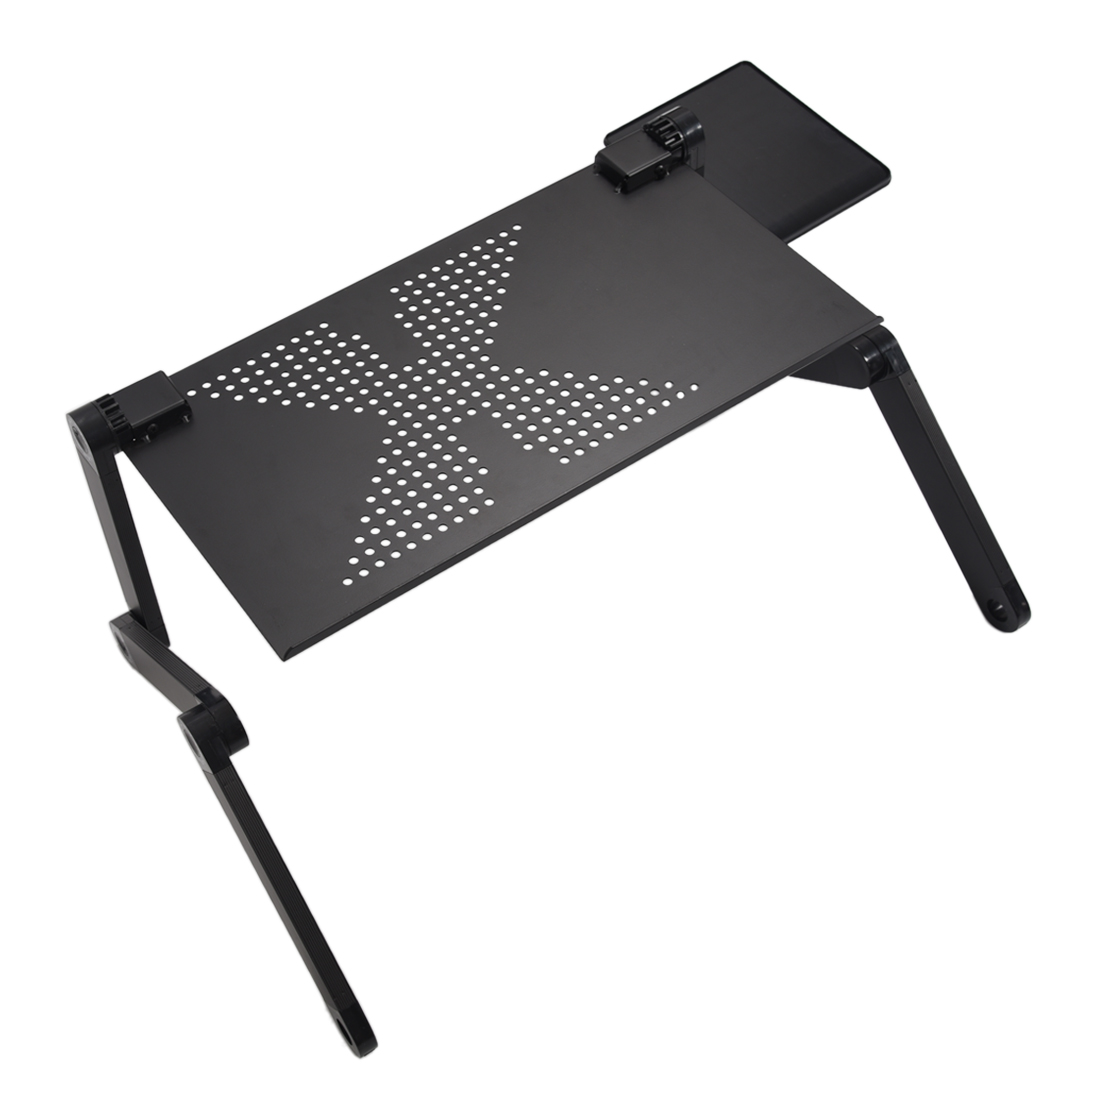 HOT GCZW-Portable Foldable Adjustable Laptop Desk Computer Table Stand Tray For Sofa Bed Black